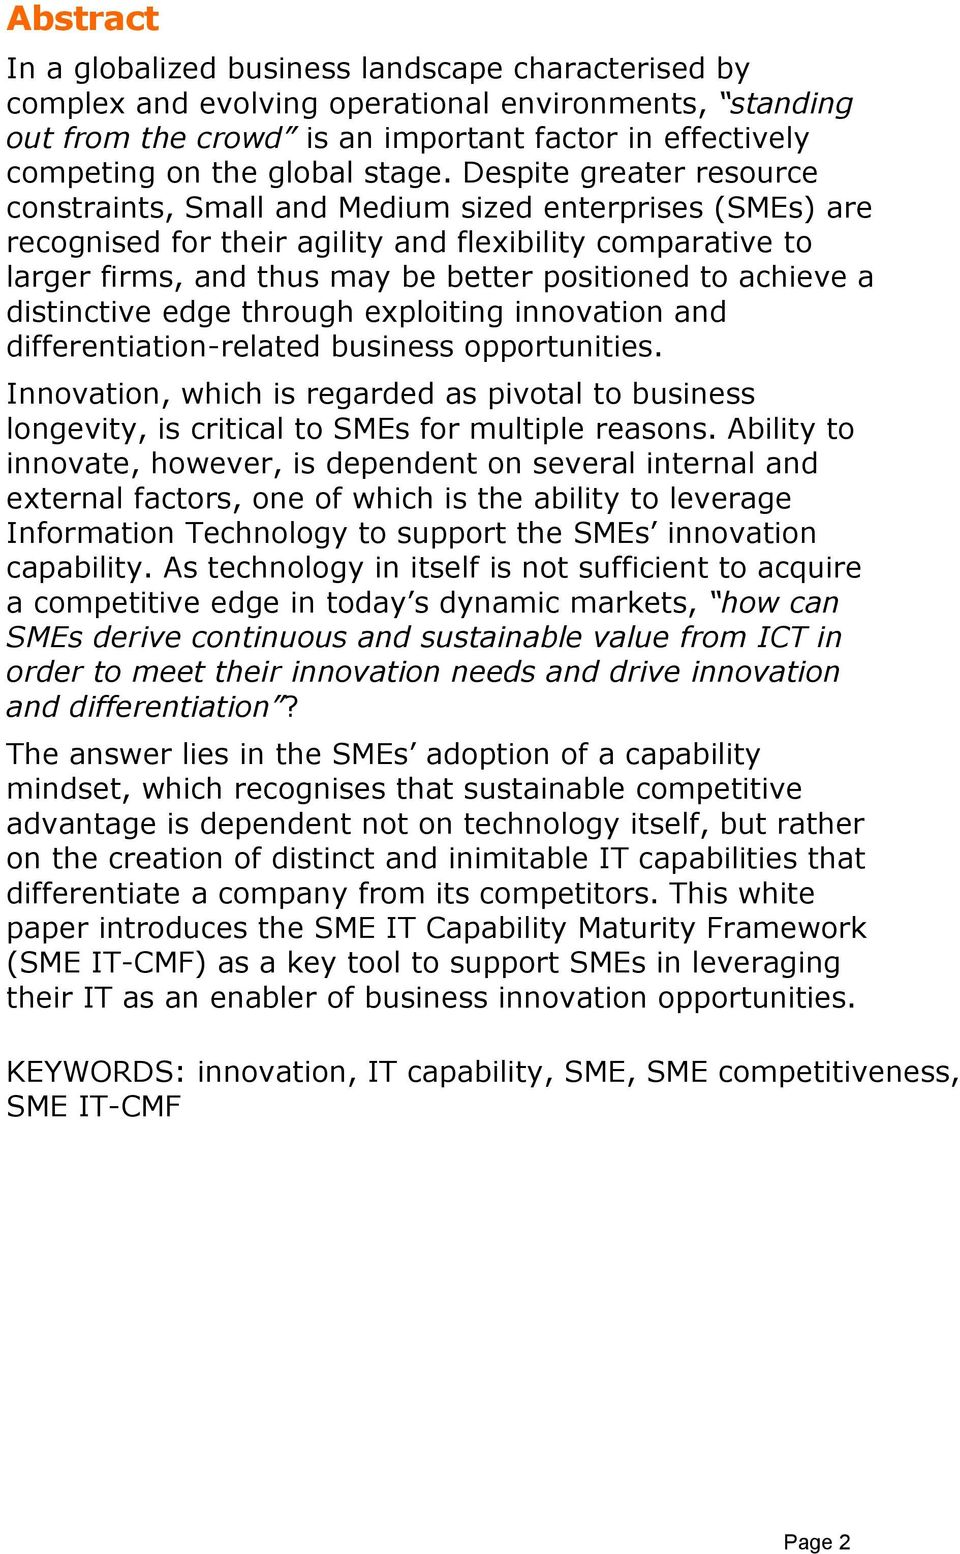 Despite greater resource constraints, Small and Medium sized enterprises (SMEs) are recognised for their agility and flexibility comparative to larger firms, and thus may be better positioned to